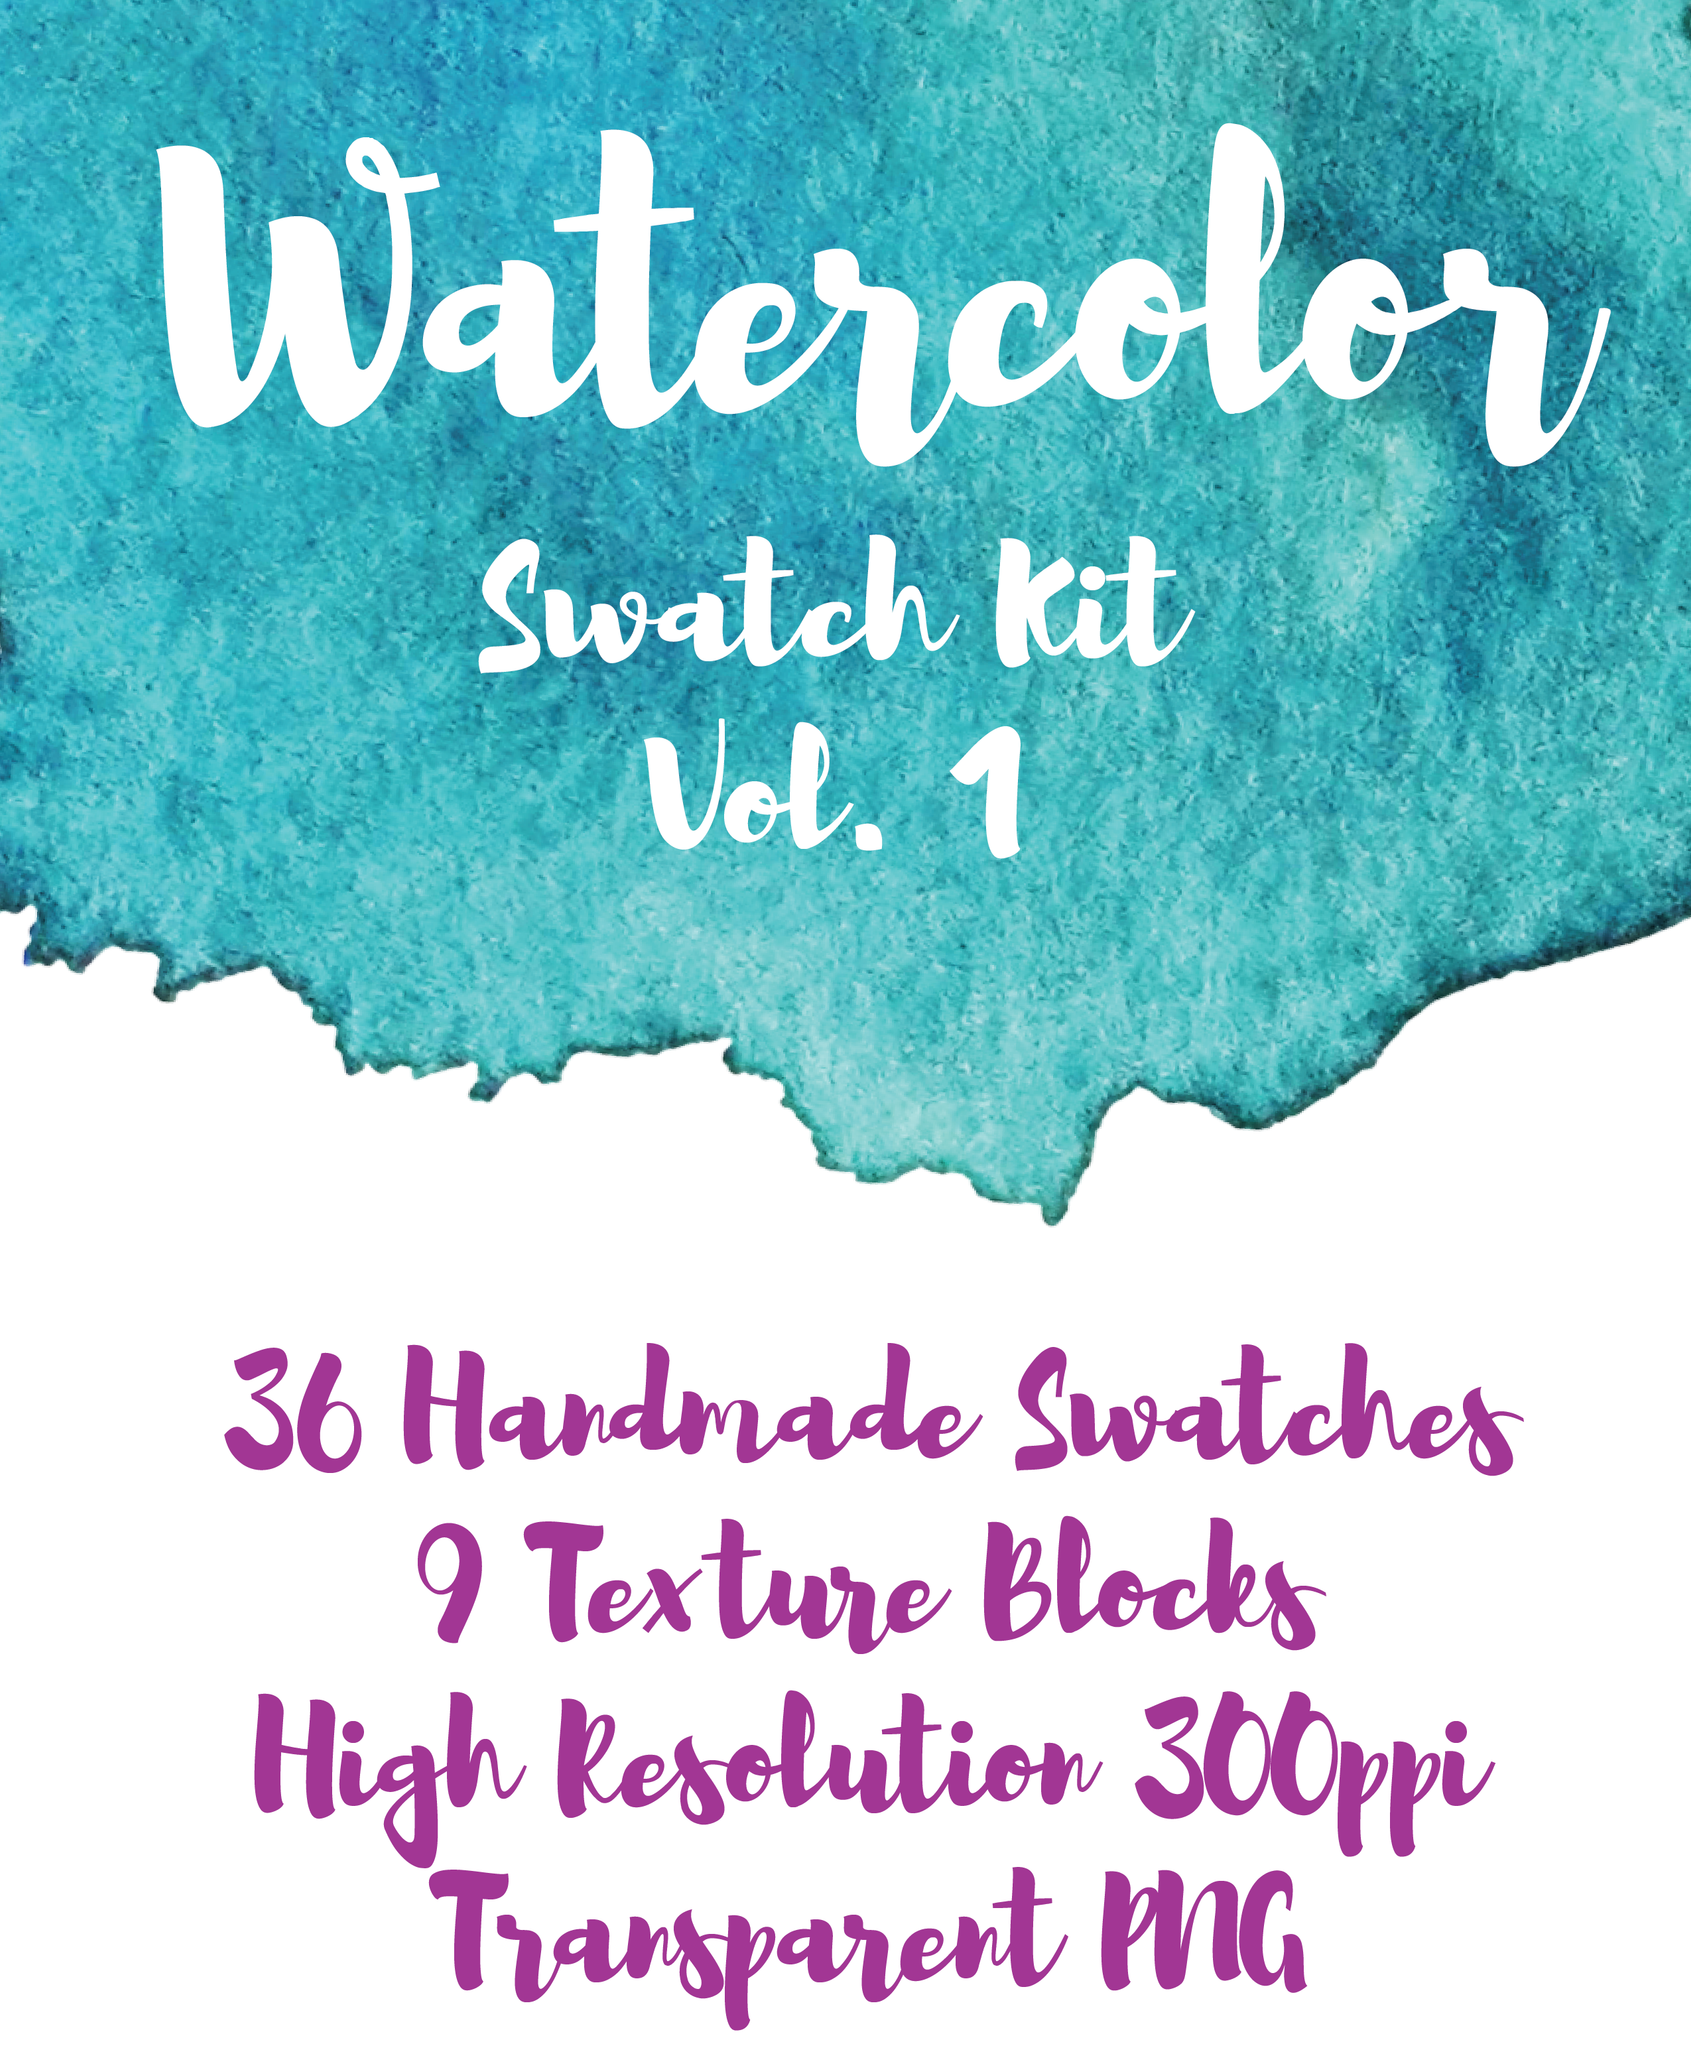 Watercolors Swatch Kit